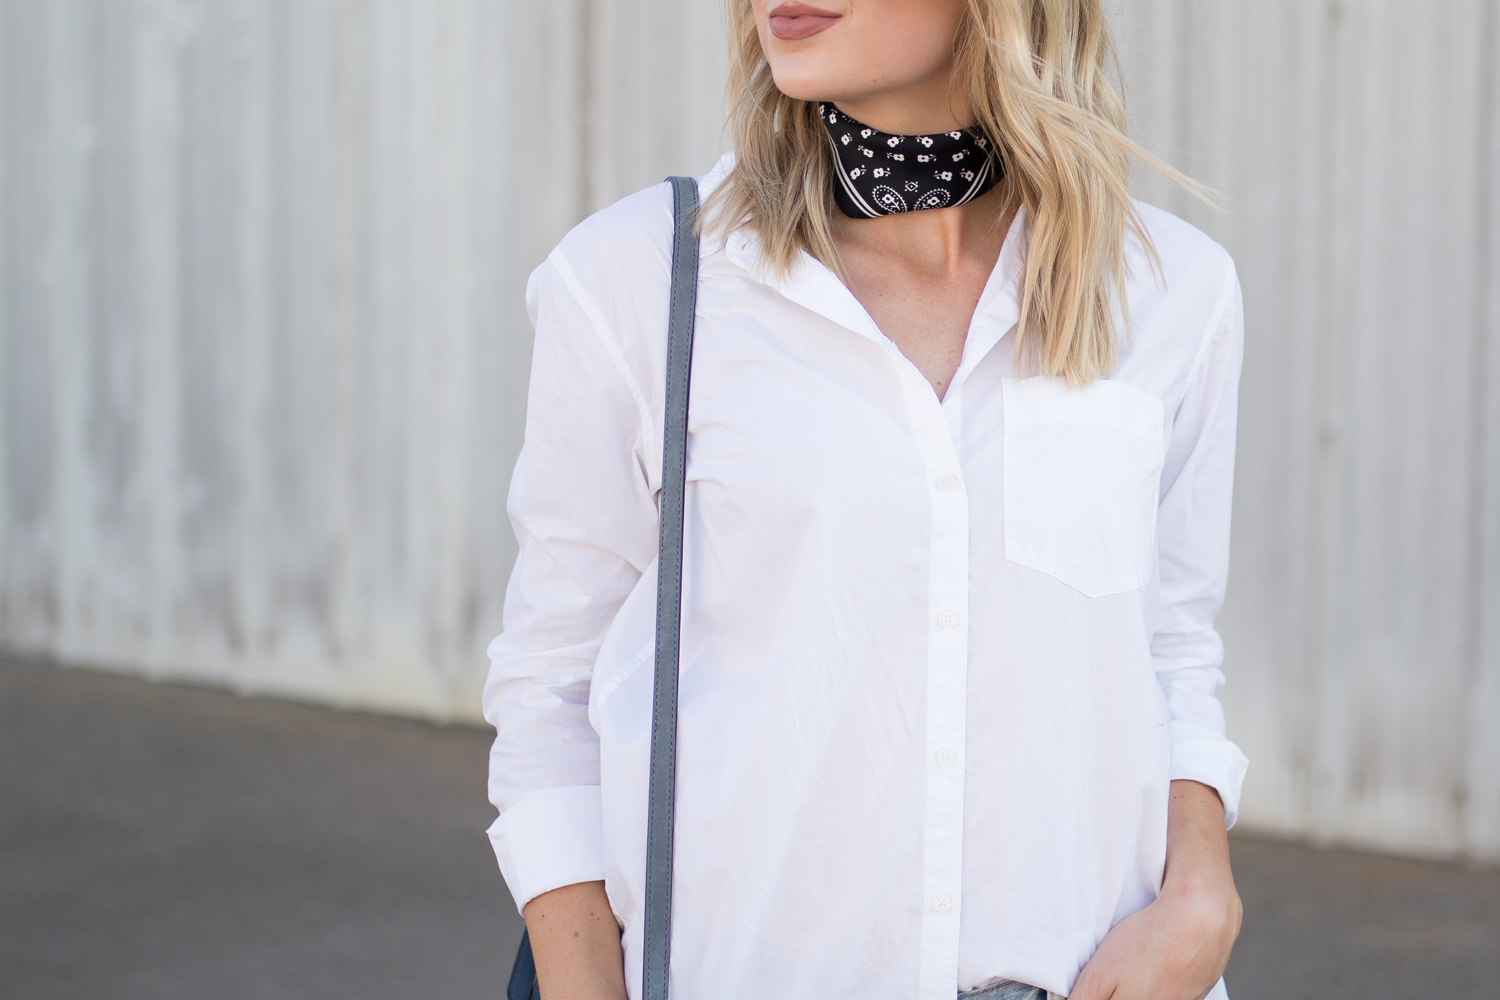 Neck scarf with a button down